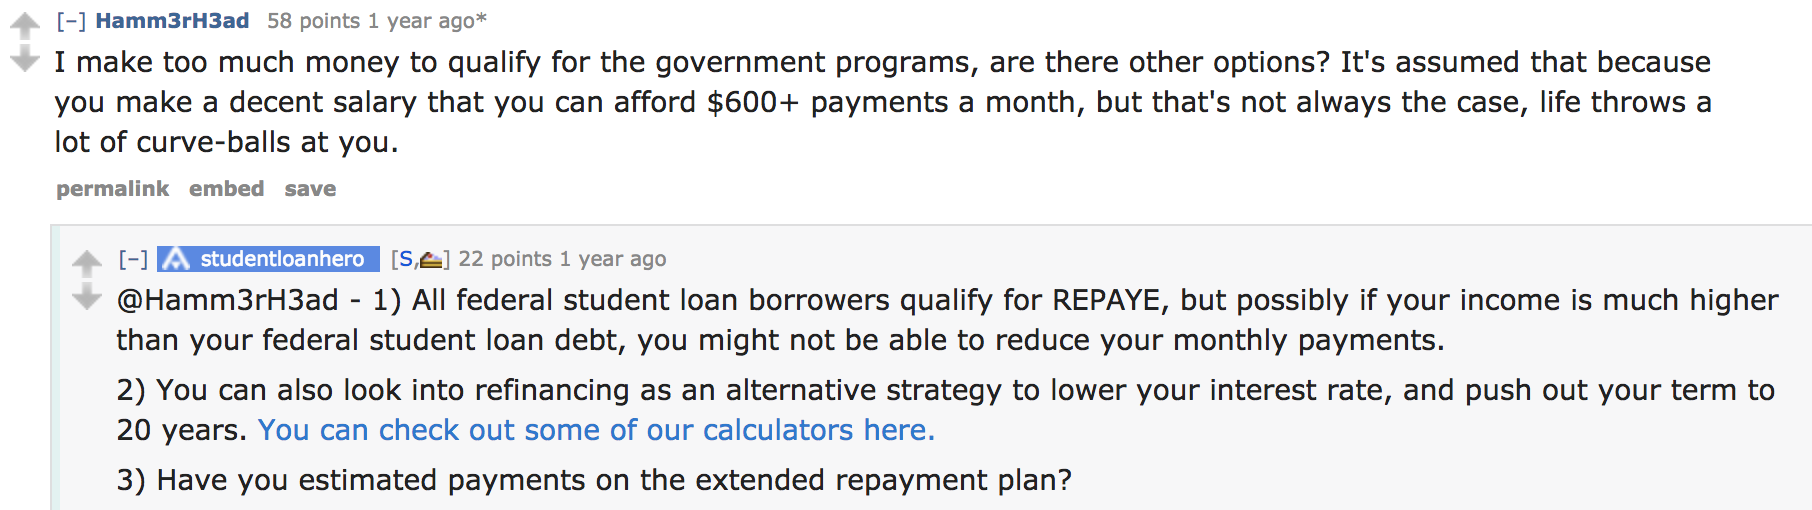 student loan hero AMA question and answer